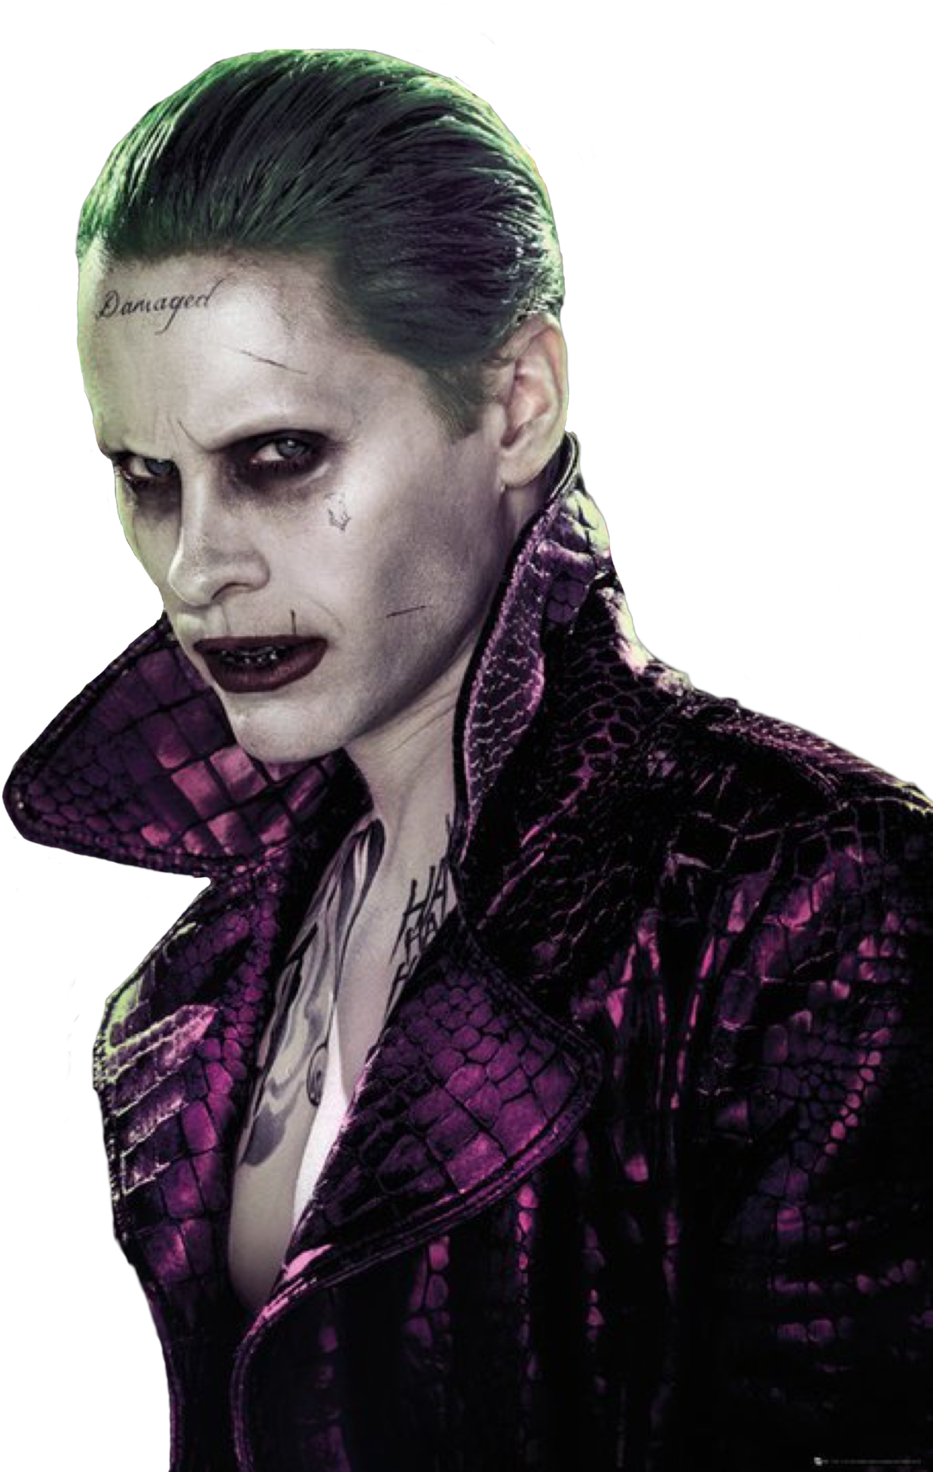 Download Hd Suicide Squad Joker Poster 61 X 91 5 Cm Transparent Png Image Nicepng Com